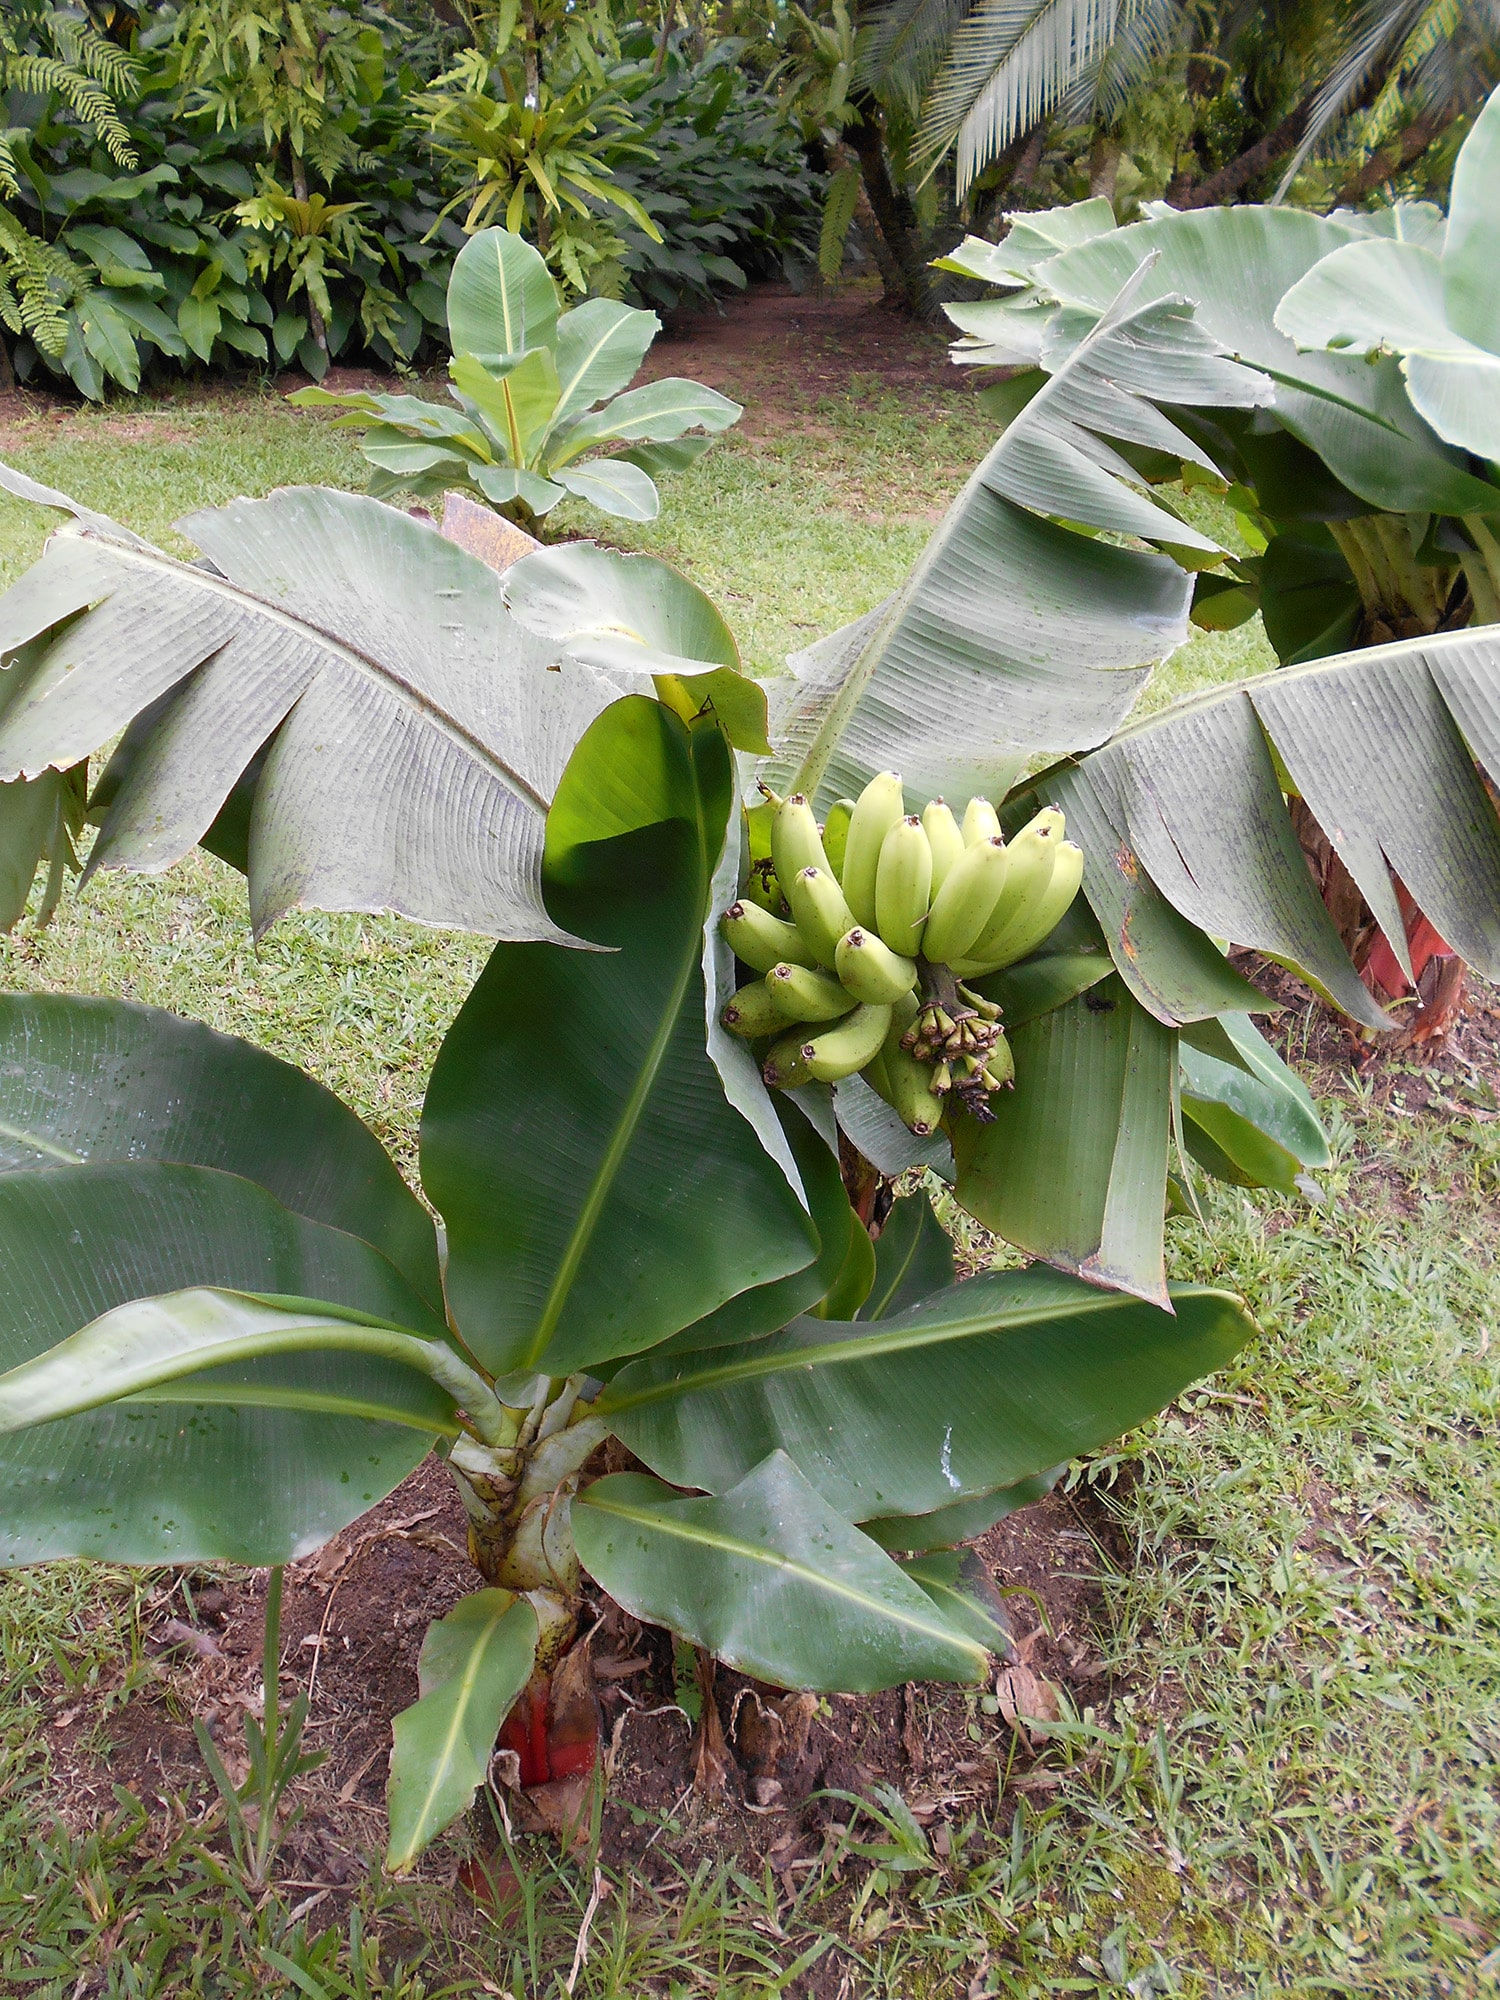 musa acuminata Musa acuminata 'dwarf cavendish'- this is one of the best bananas for many locations it was once a very popular commercial variety and is still widely grown it was once a very popular commercial variety and is still widely grown.